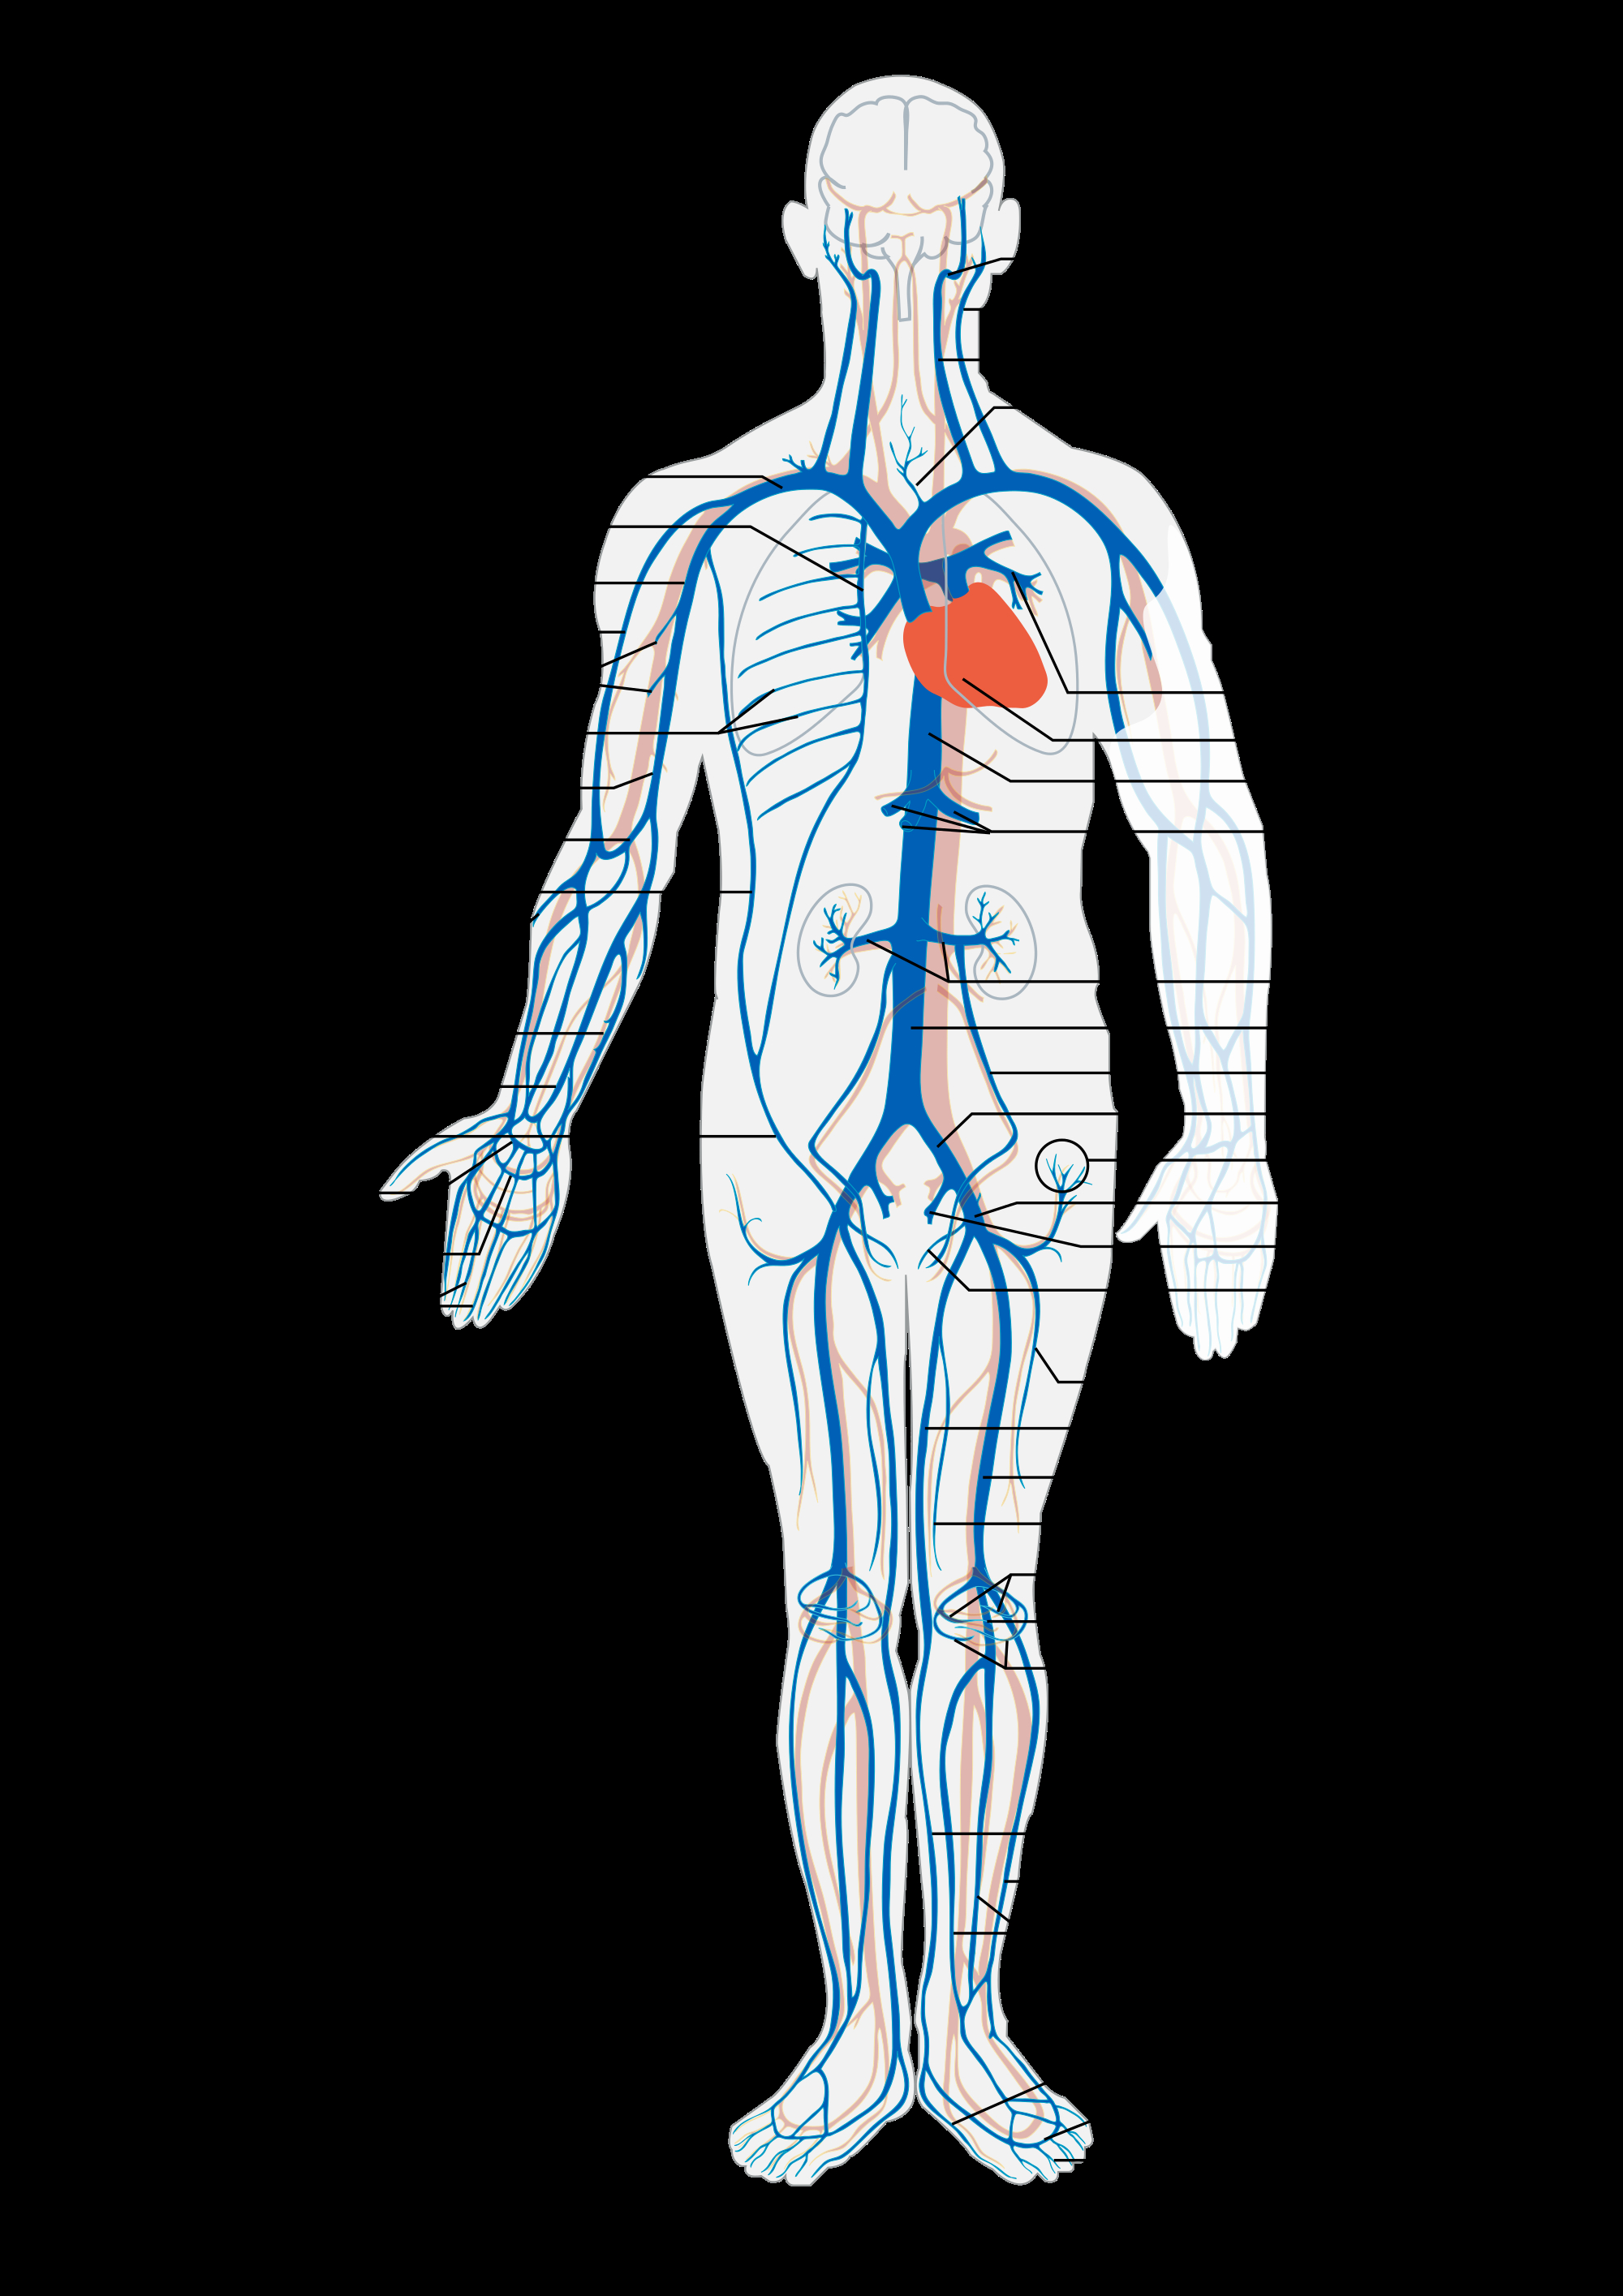 Arteries And Veins Diagram Vein Wikipedia